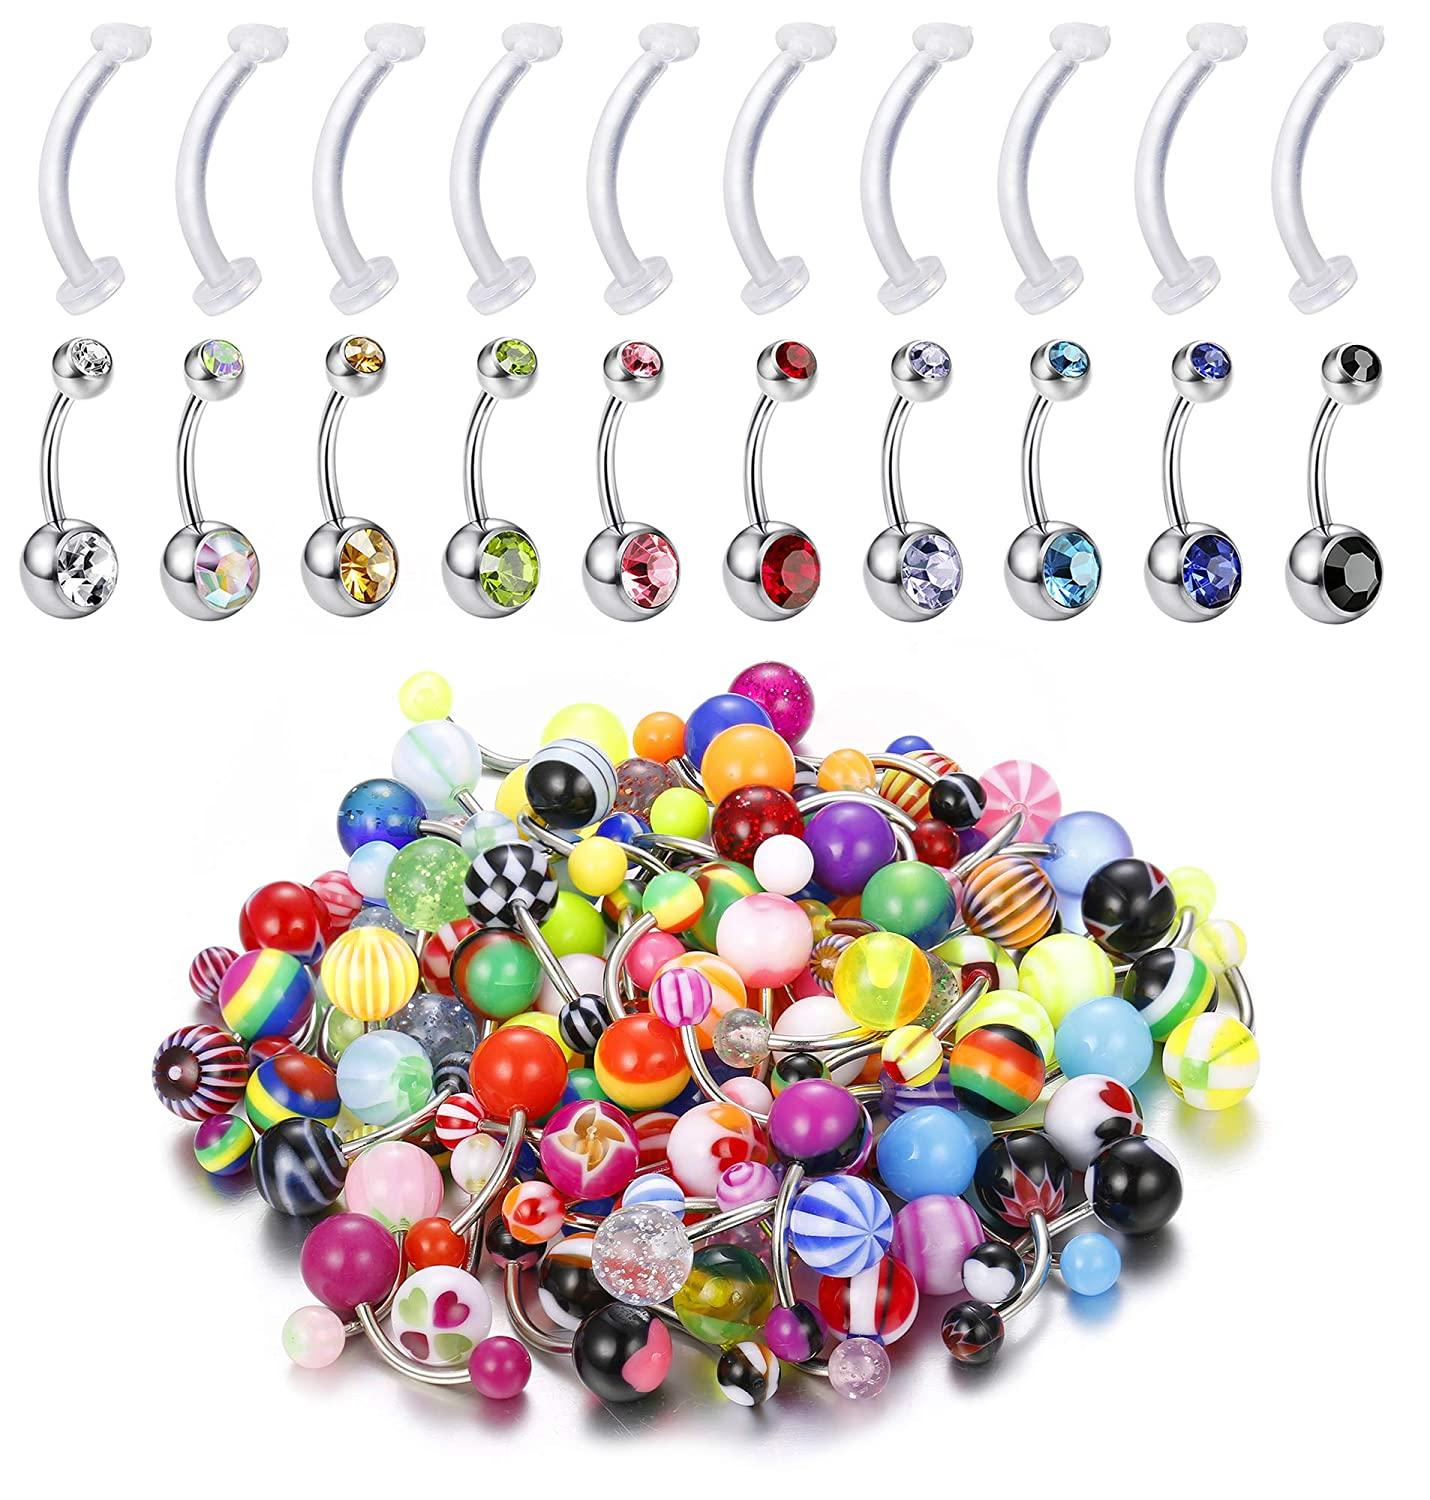 Amazon Com Udalyn 100pcs 14g Stainless Steel Belly Button Ring Set